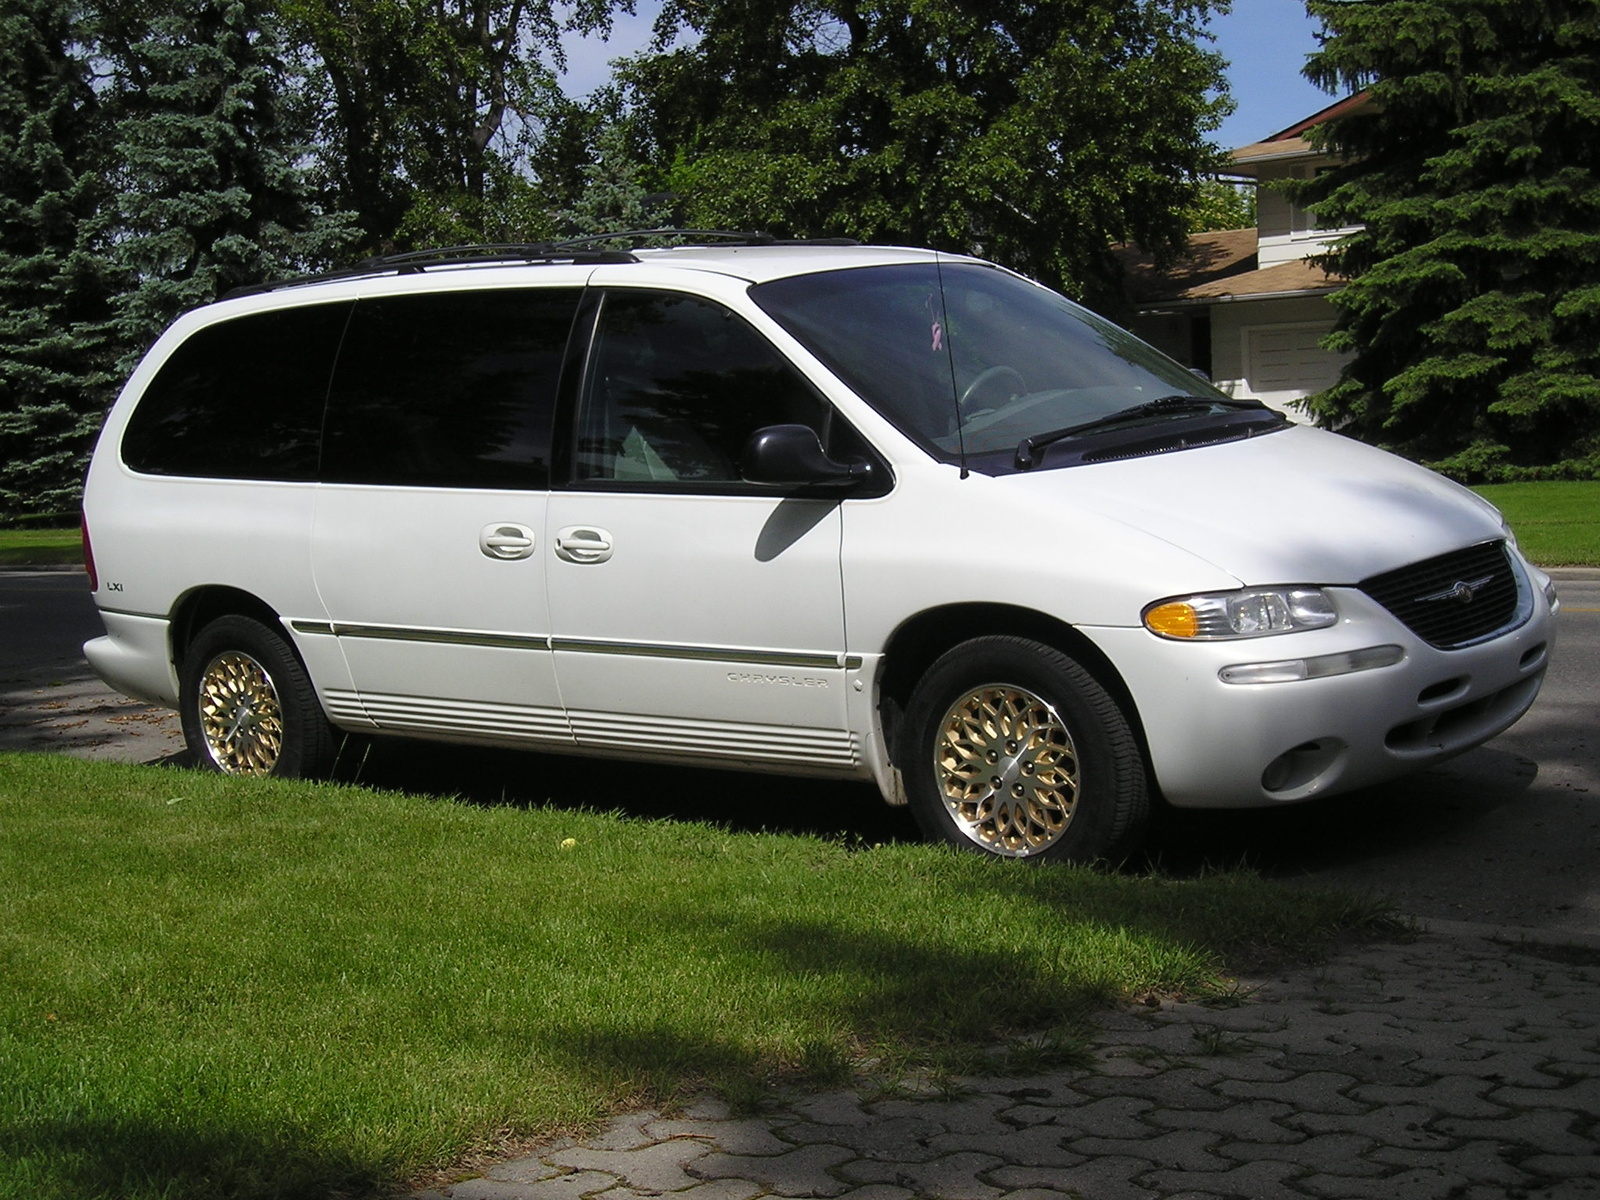 1993 Chrysler Town & Country Chrysler Town and Country STD picture